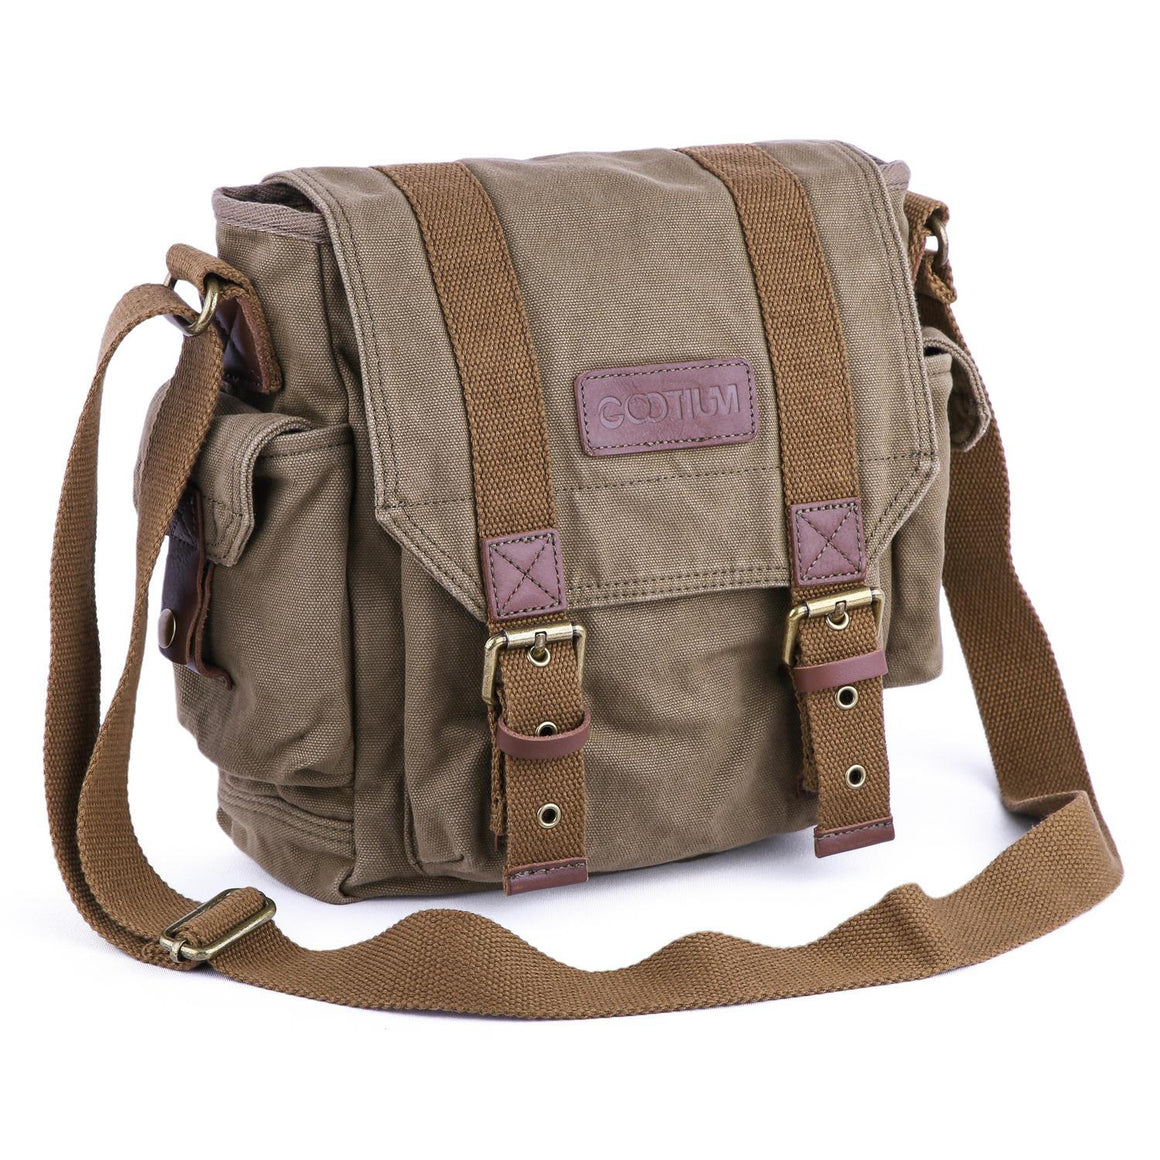 e79051768c Leather Canvas Backpack  71102 - Gootium